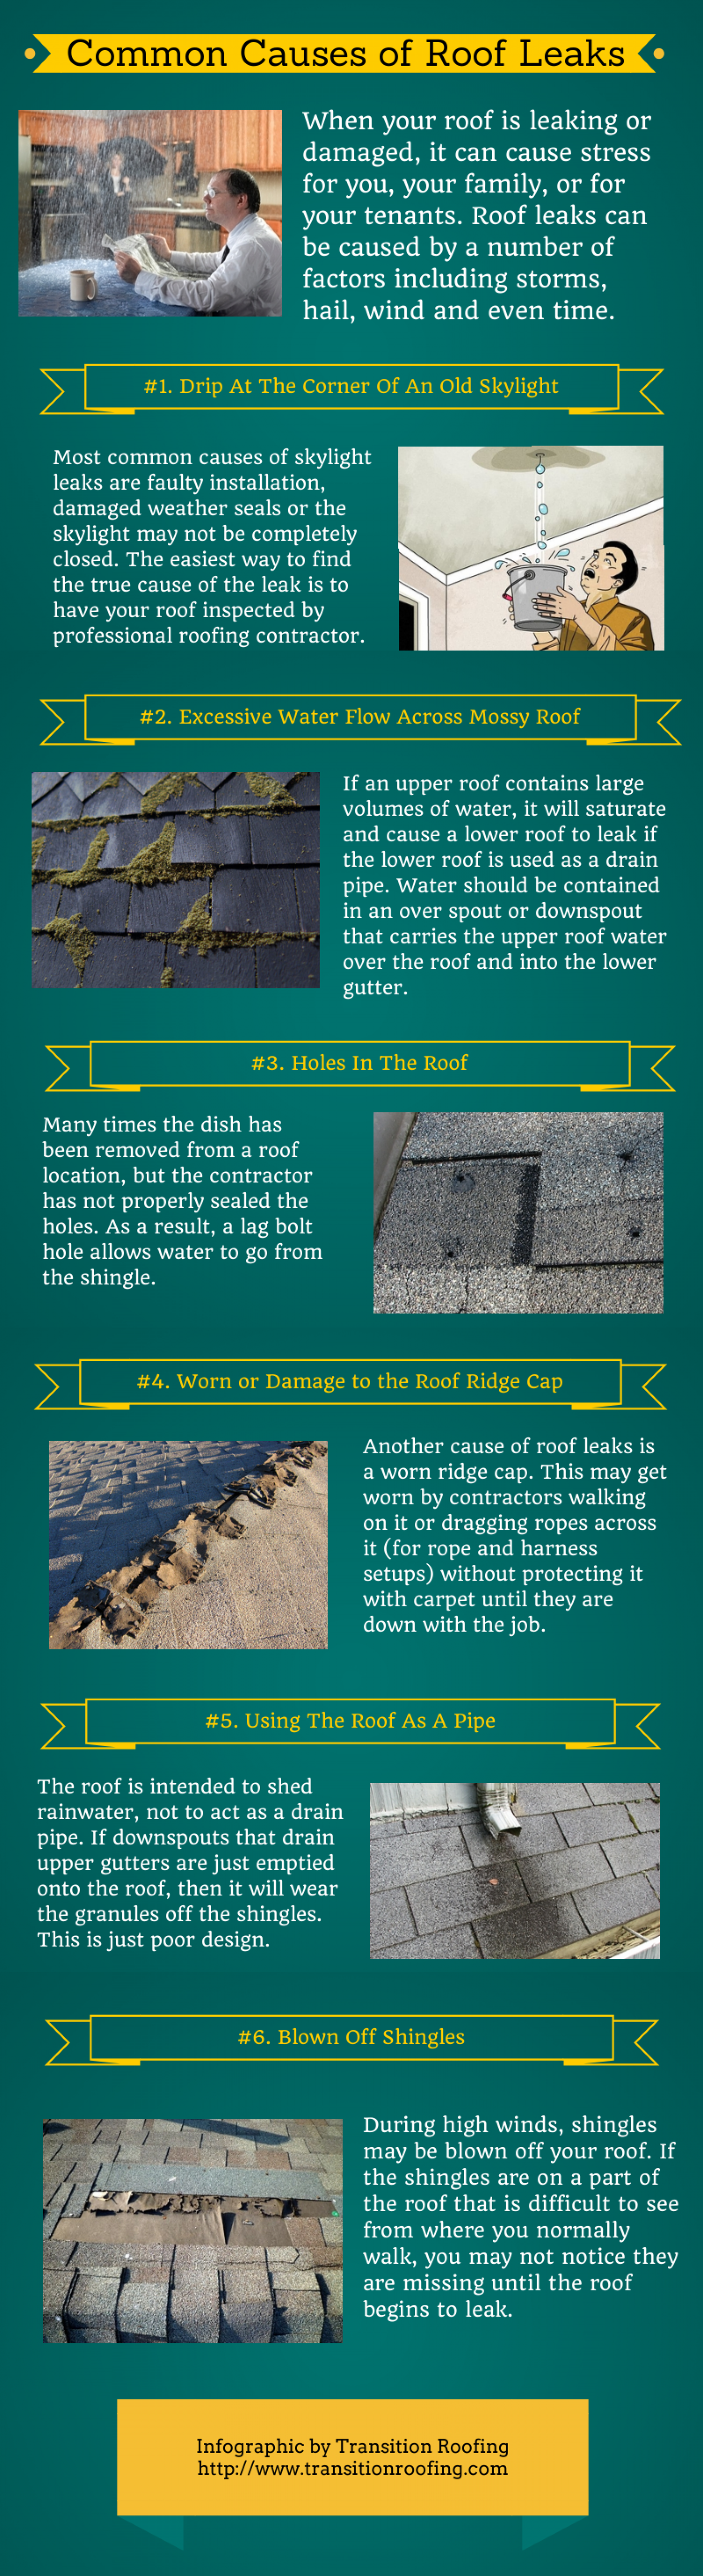 Common Causes of Roof Leaks Infographic